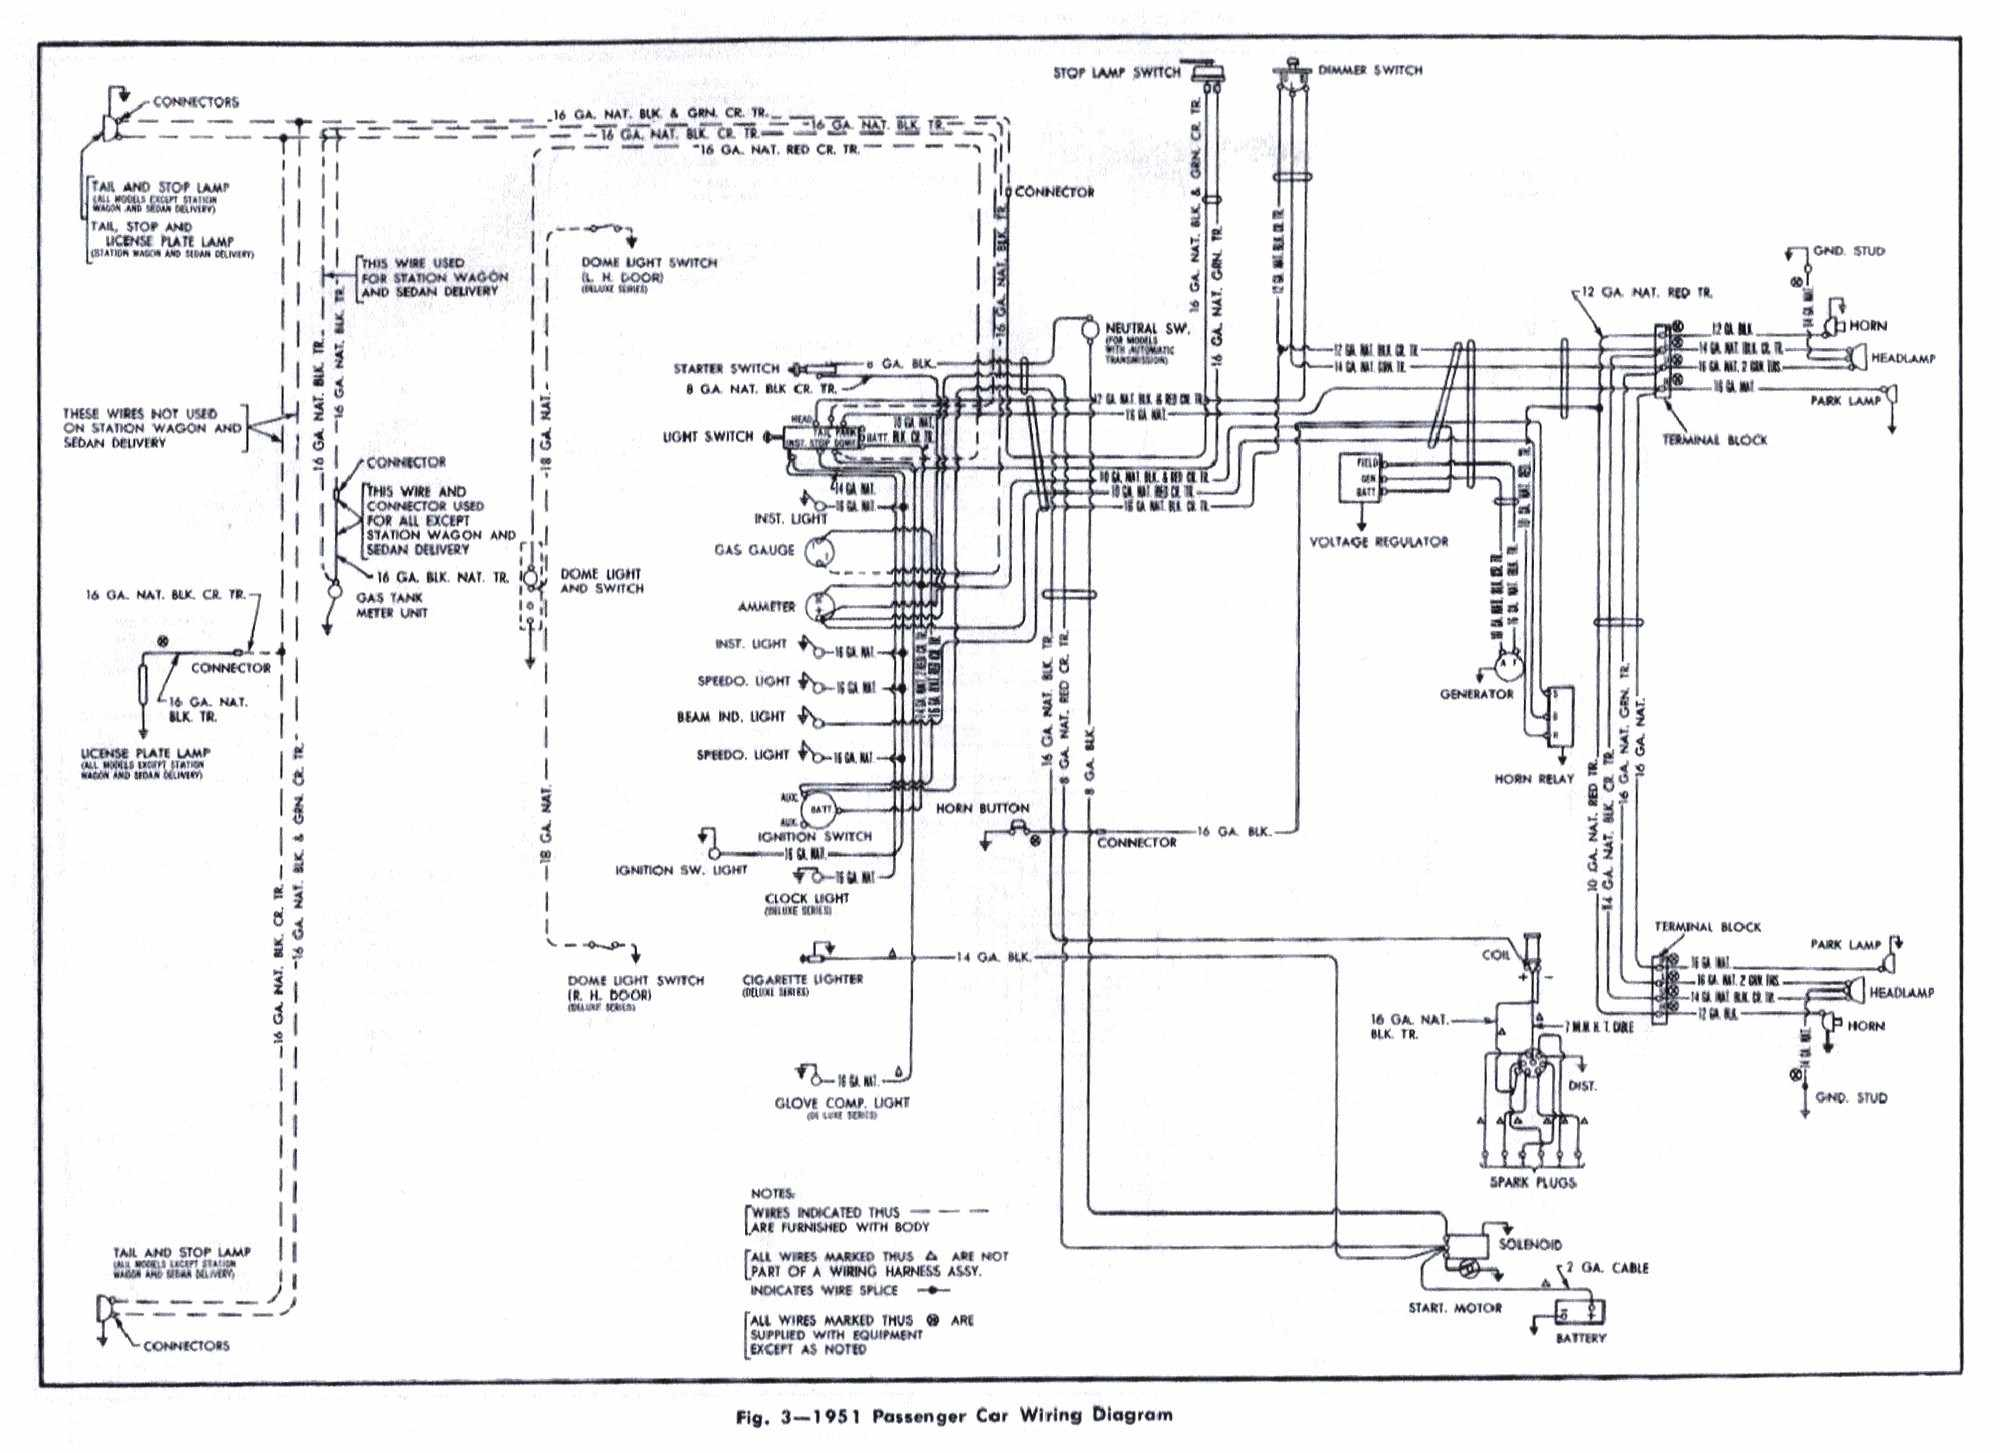 Ba A Wiring Diagram Download Diagrams Ford L Engine